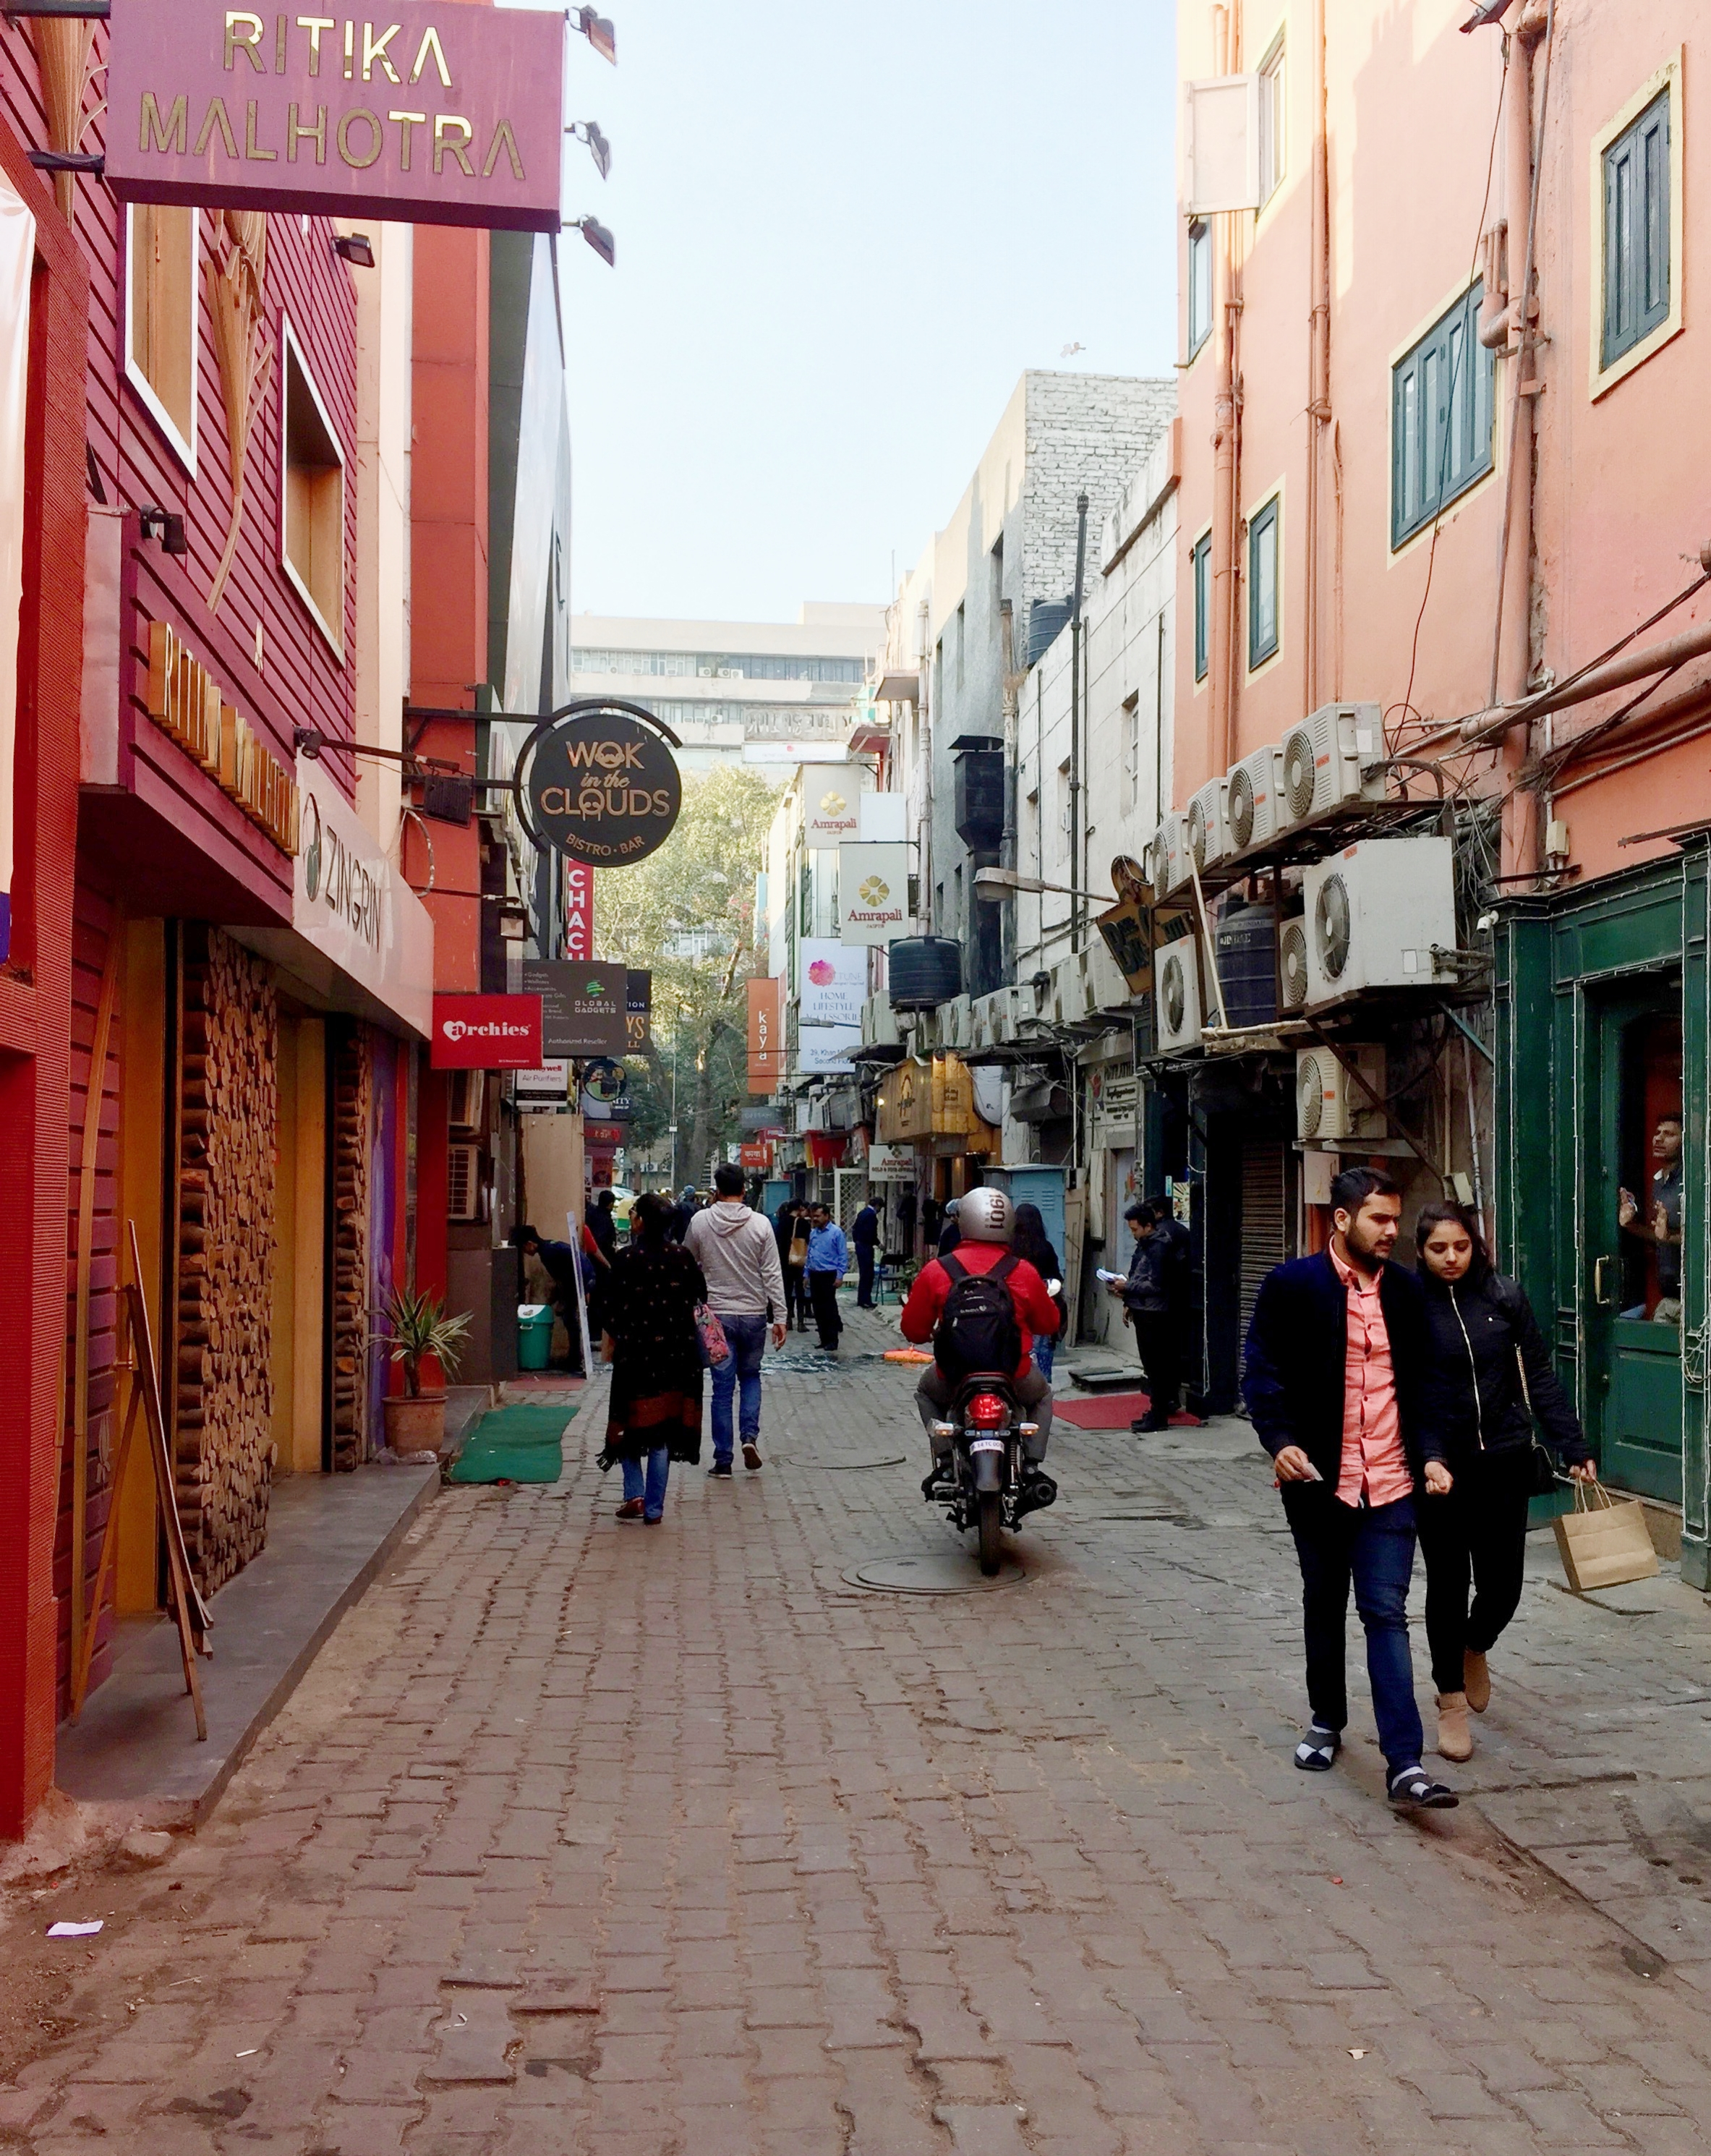 KHAN MARKET, NOT WHAT I WAS EXPECTING AT ALL! GREAT EATERIES IN THIS AREA.